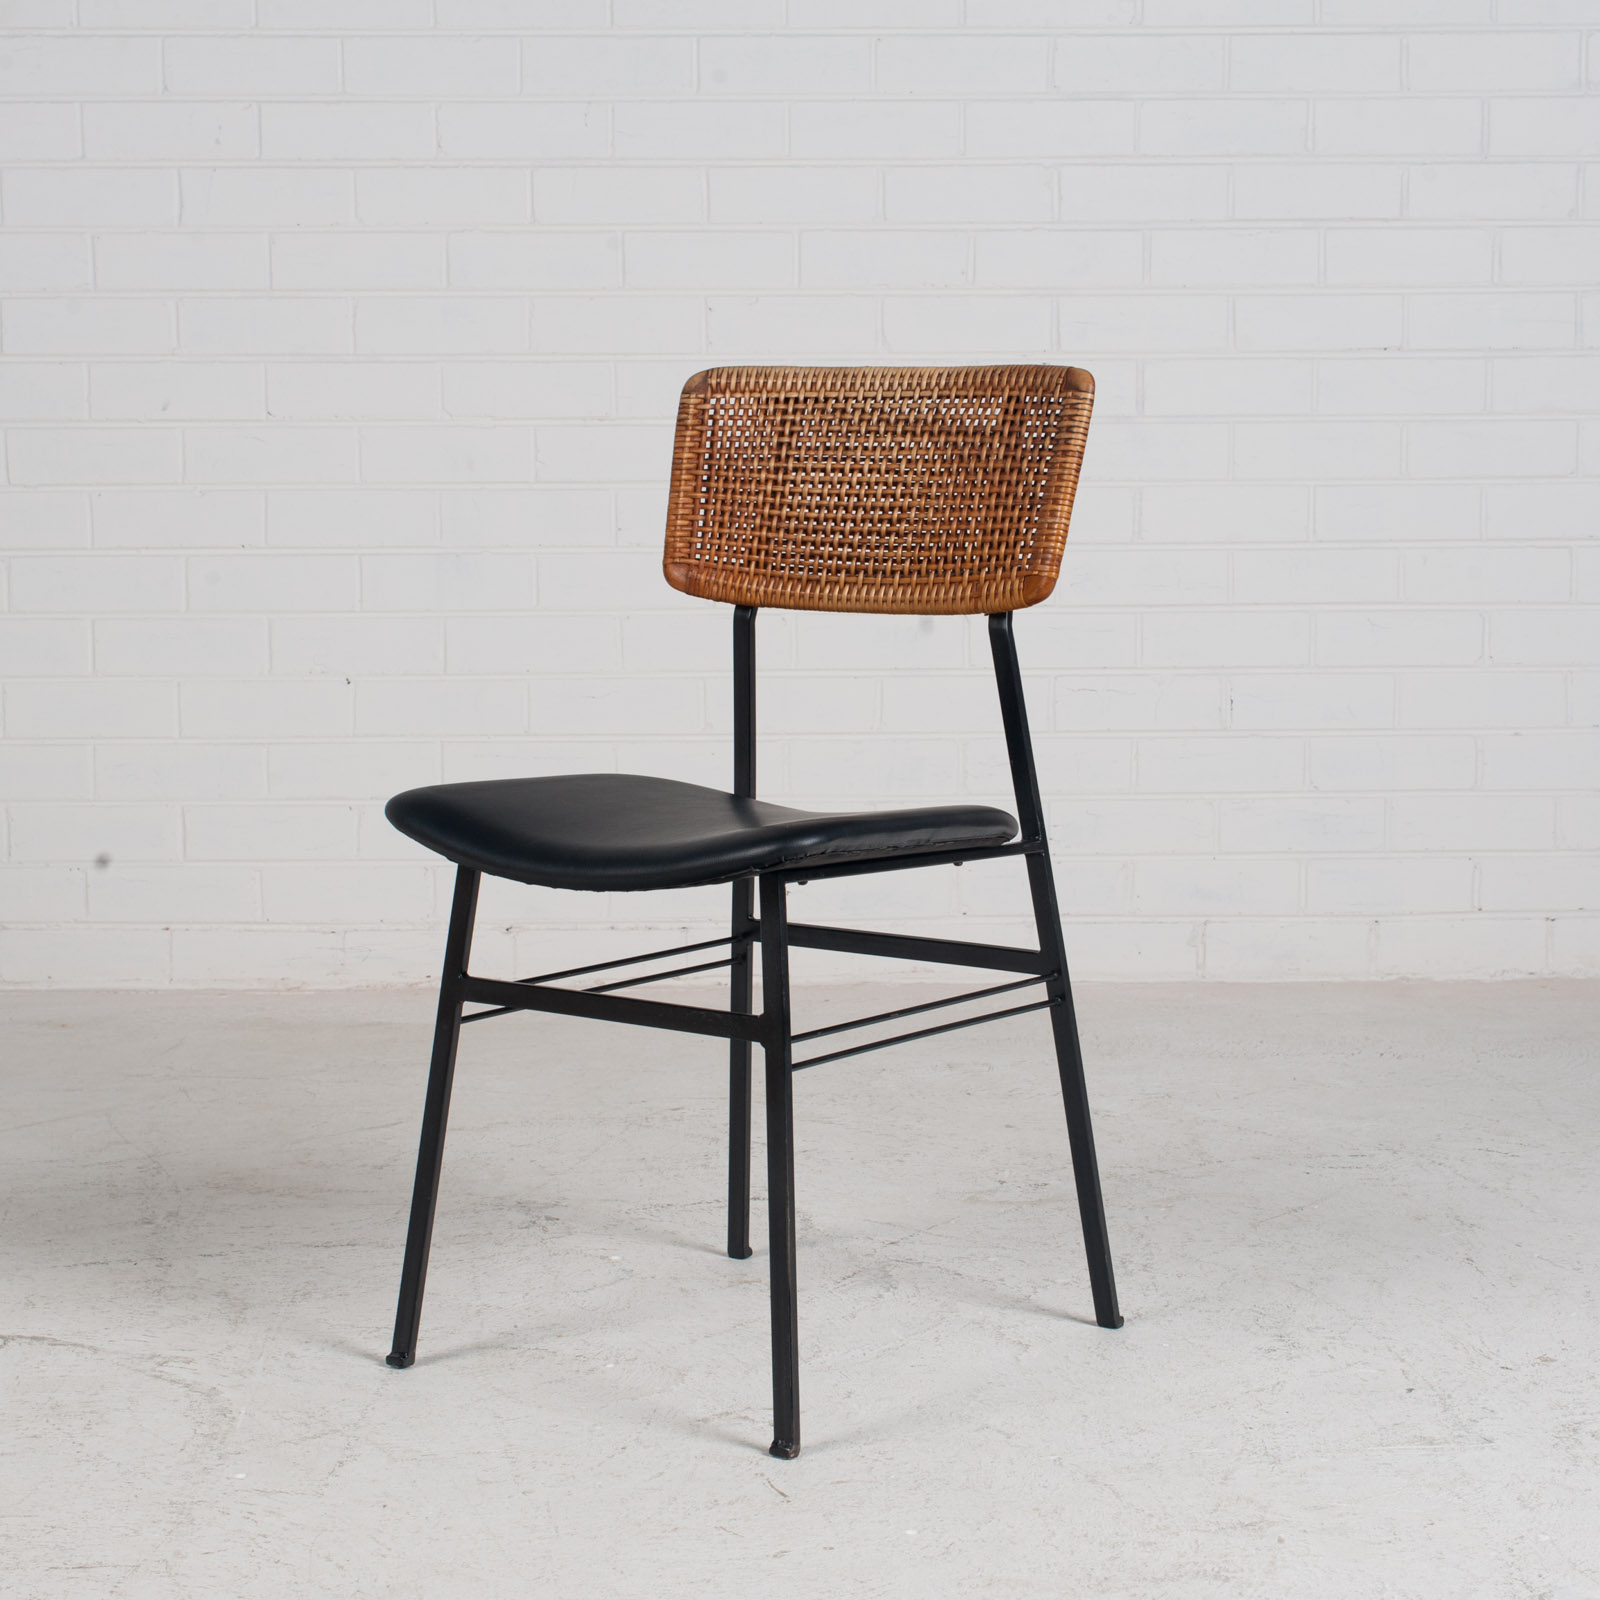 Set Of 4 Dining Chairs By Rohe In Rattan And Original Vinyl 1960s Denmark 01